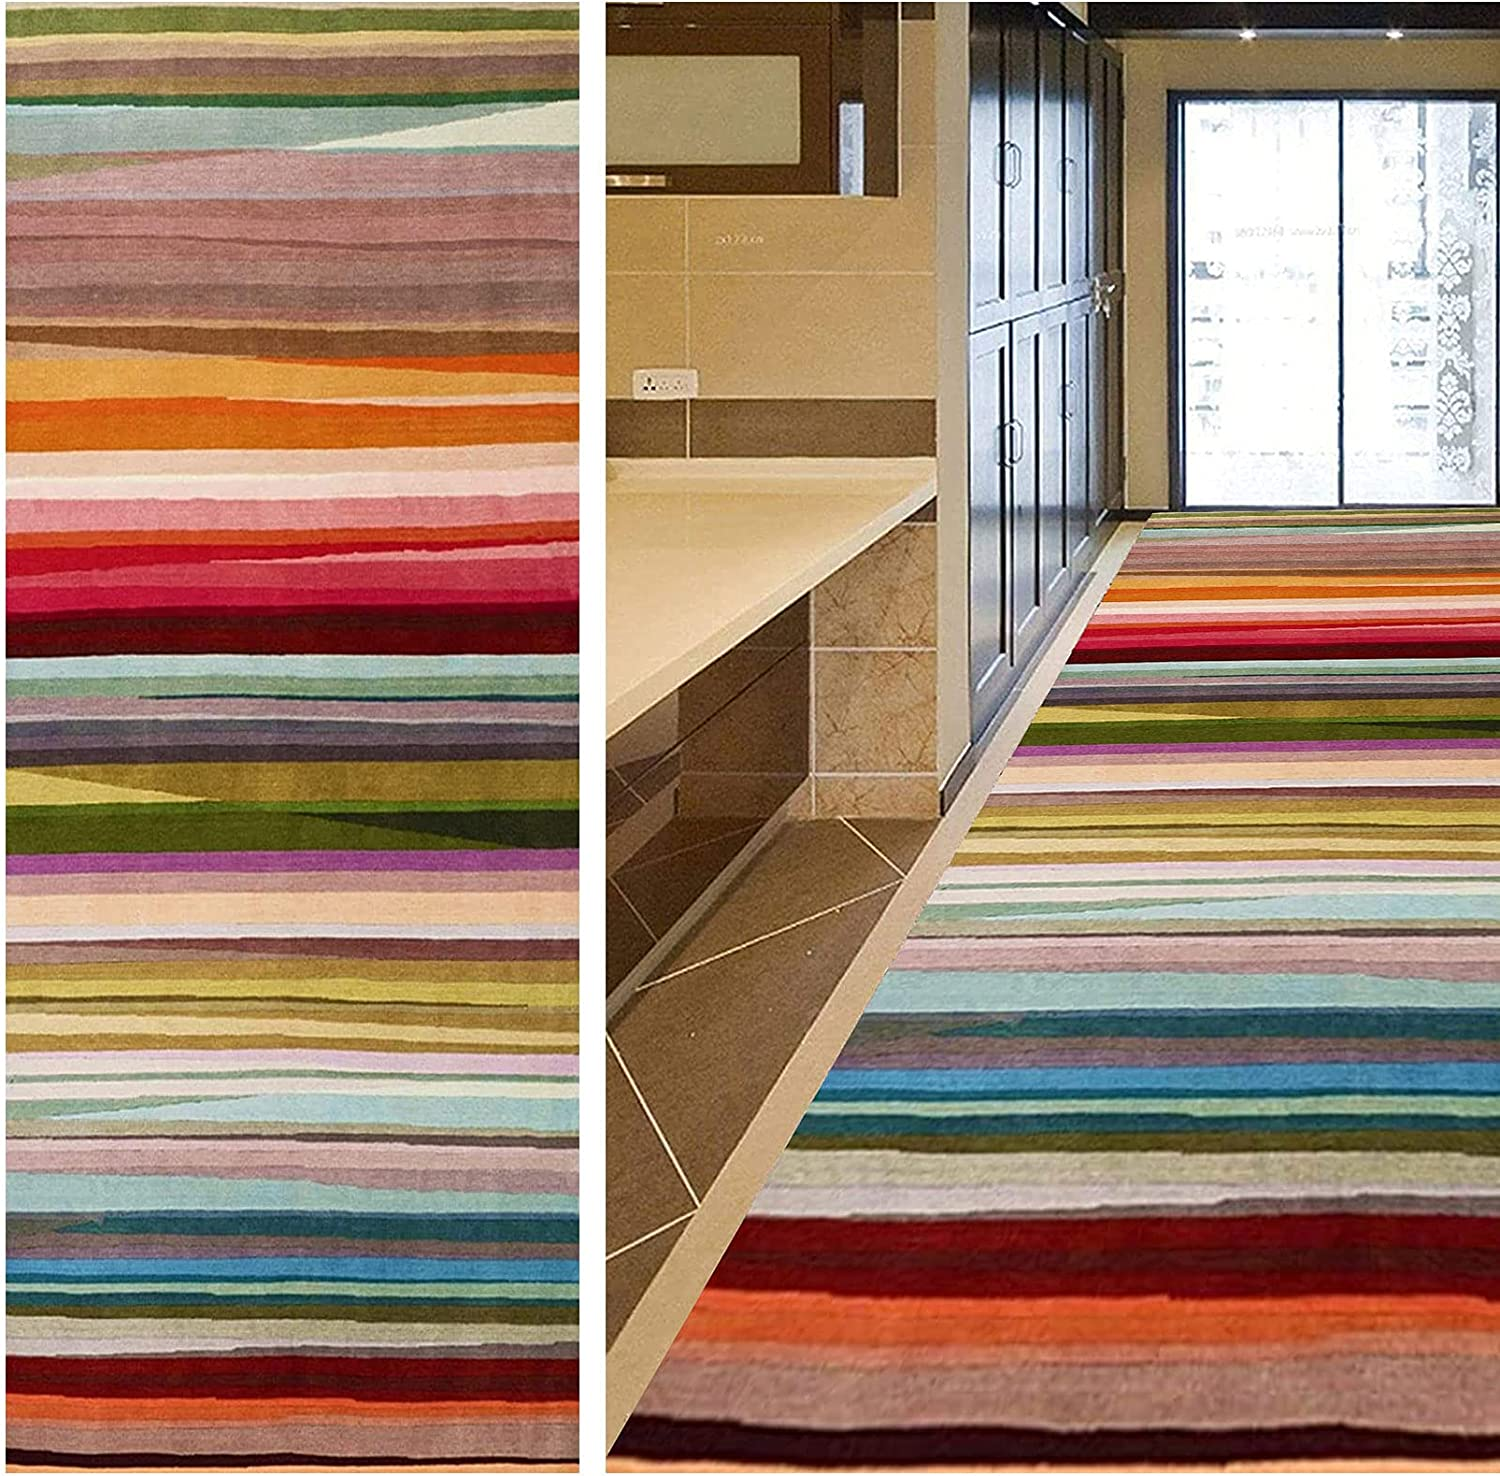 GUOYUYU Runner Cheap bargain Rug 90x120cm Durable Made Co Outdoor Multi New Free Shipping